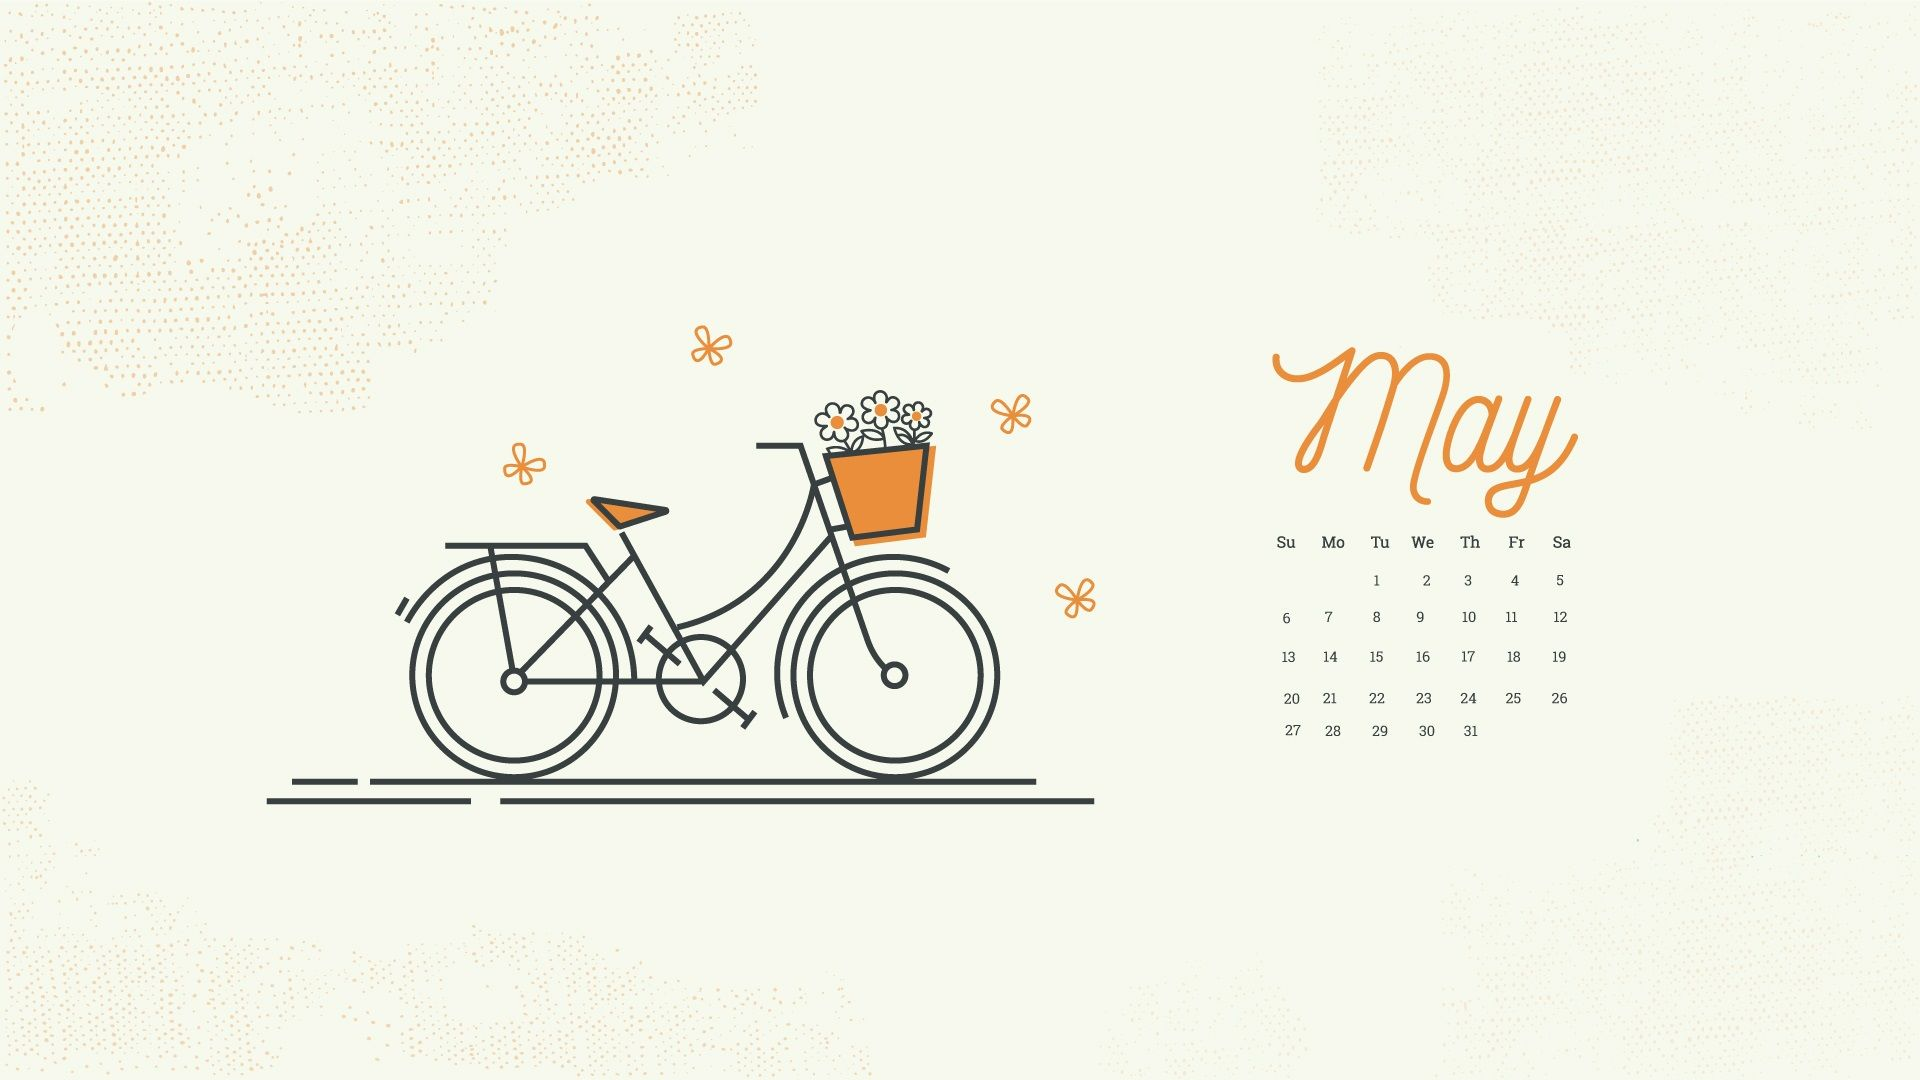 May 2018 Desktop Calendar Wallpaper Latest Calendar in 2019 1920x1080